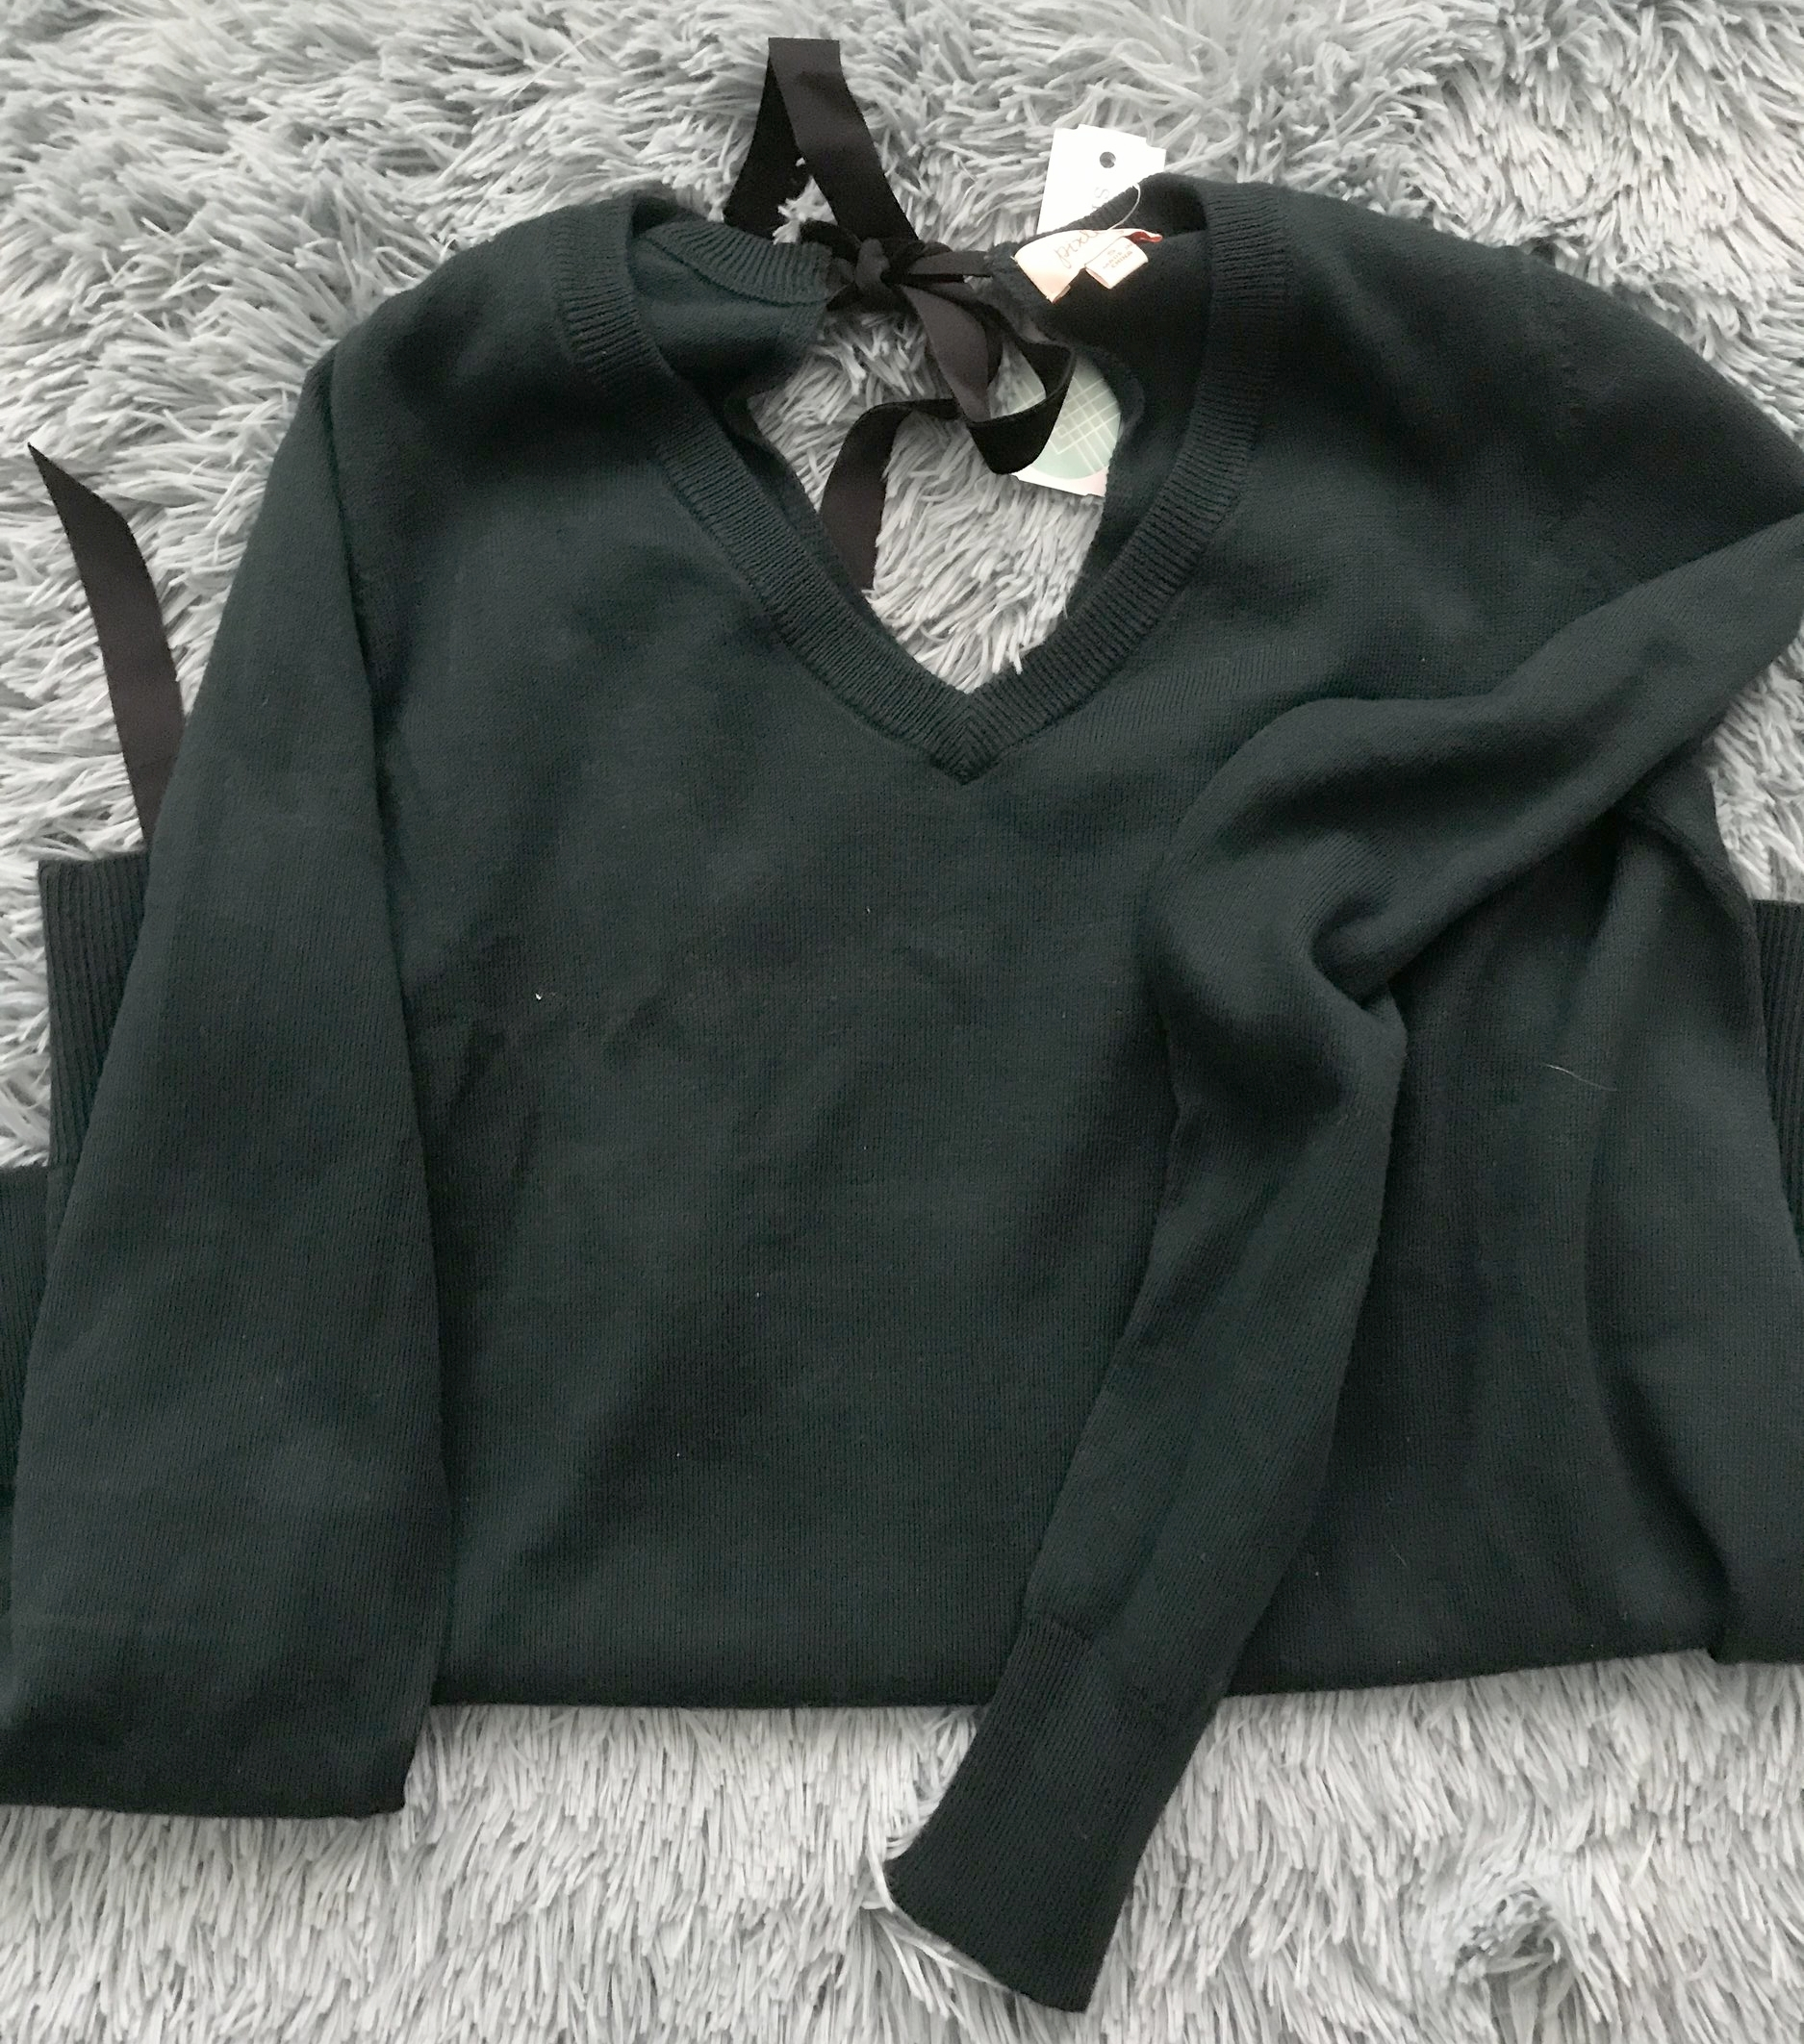 Pixley Danteila Velvet tie pullover  - While I thought the tie was super cute, it was kinda unnoticeable because it opened into such a small V in the back.  If it was more open back with the tie, I would have definitely kept it. But, for the price, it didn't do much for me. This was a RETURN